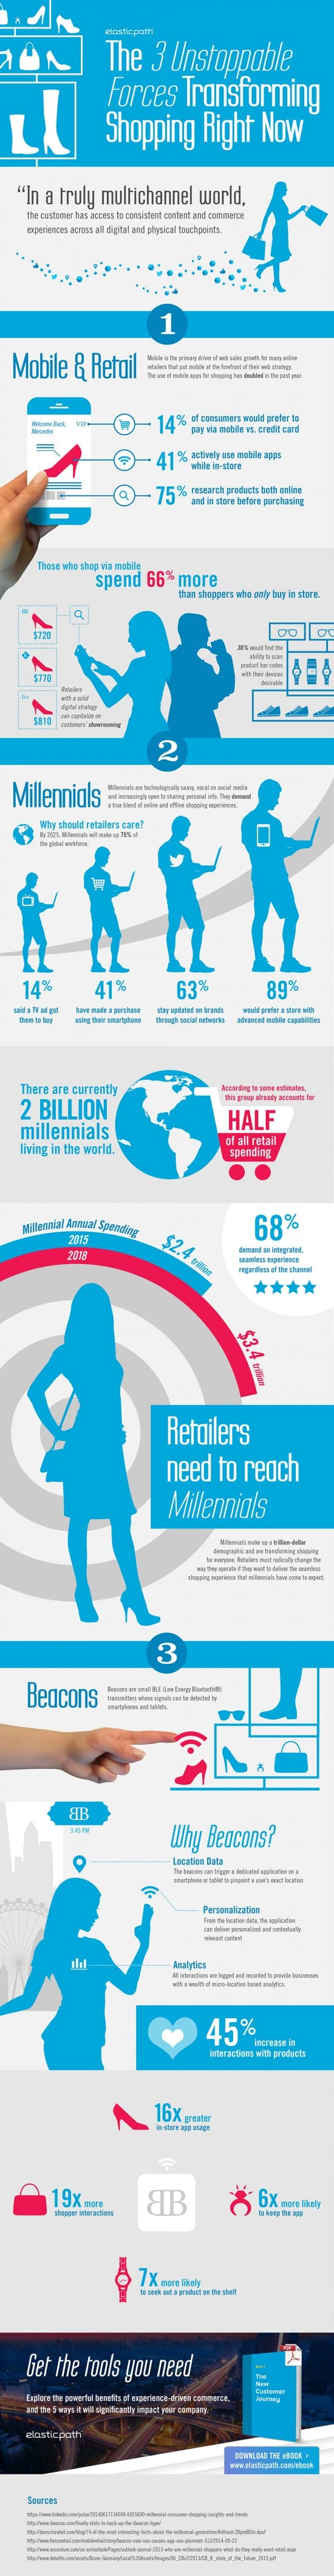 3 online retail trends infographic